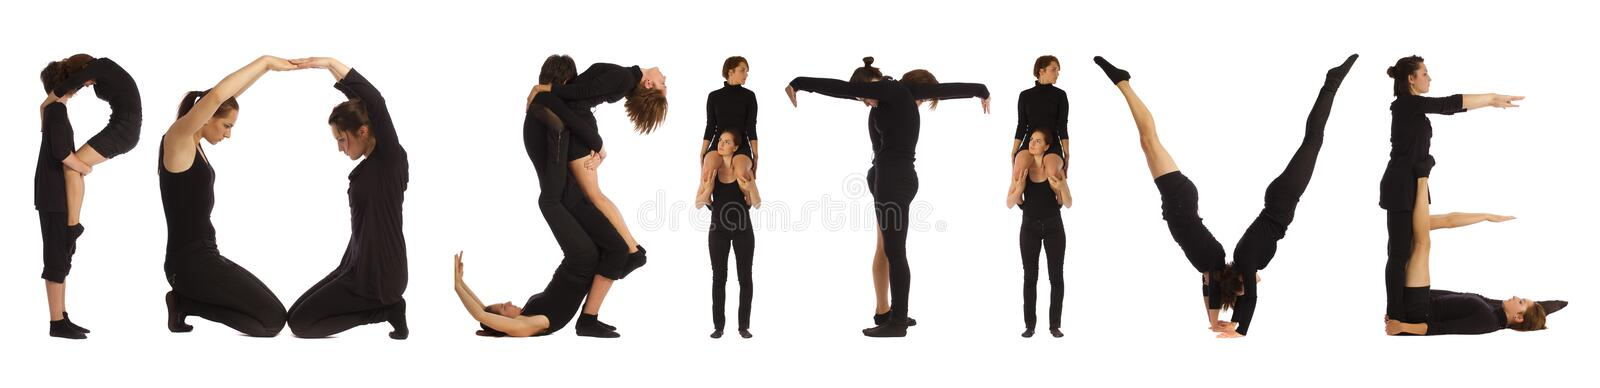 Black dressed people forming POSITIVE word. Over white background stock photo